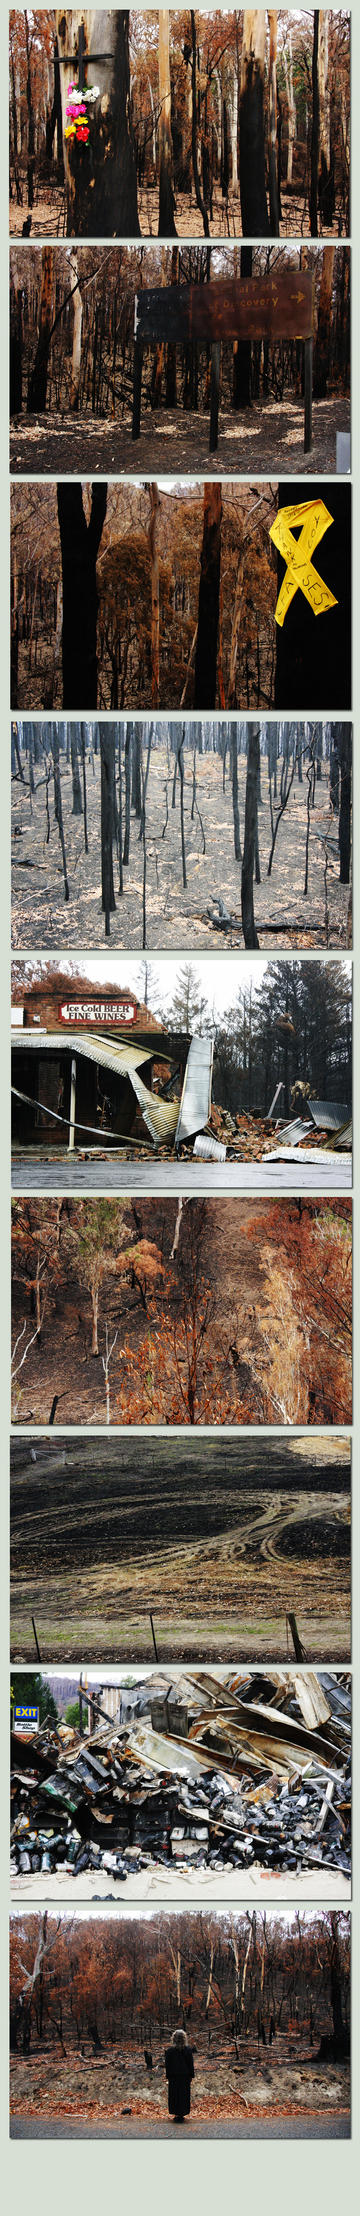 bushfire aftermath by Offering